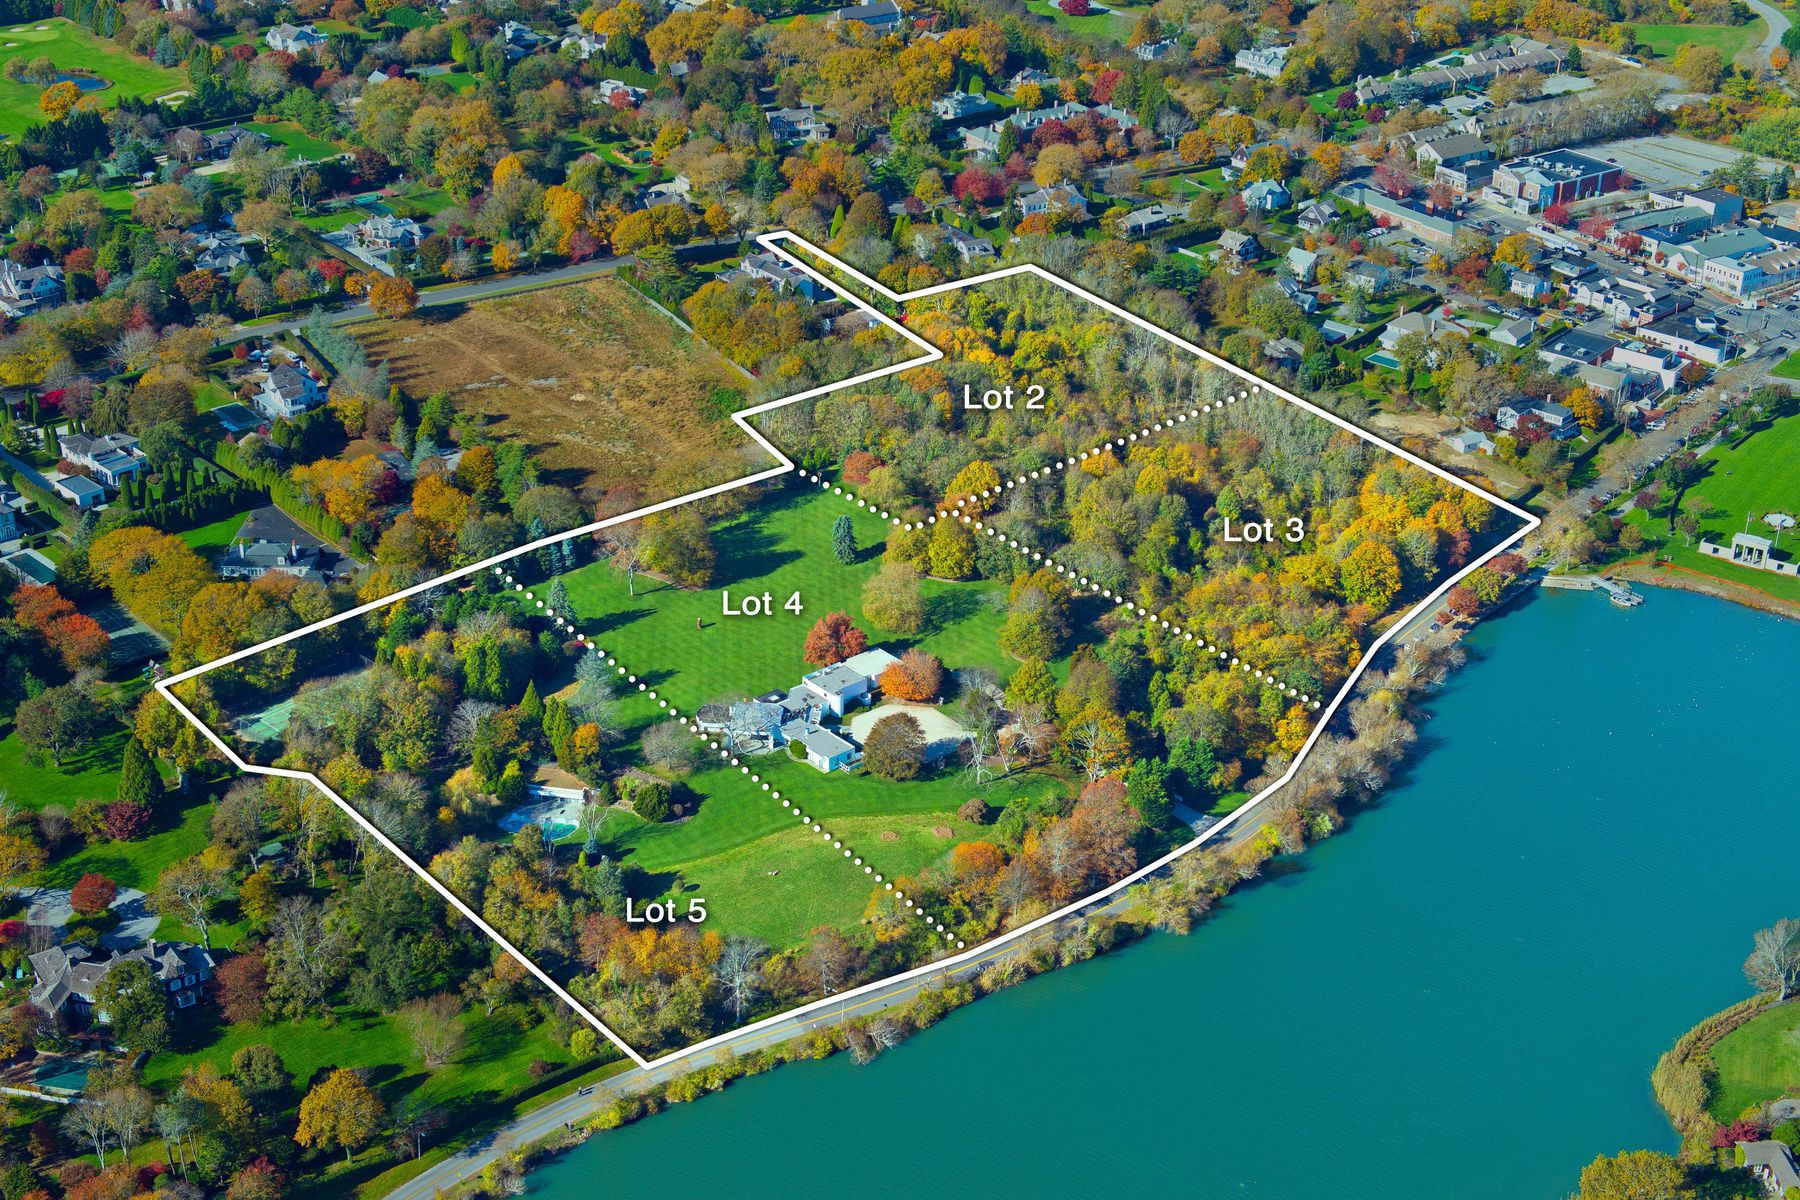 Single Family Home for Active at Overlooking Lake Agawam 137, 153 Pond Lane & 52 First Neck Lane 3 properties combined Southampton, New York 11968 United States